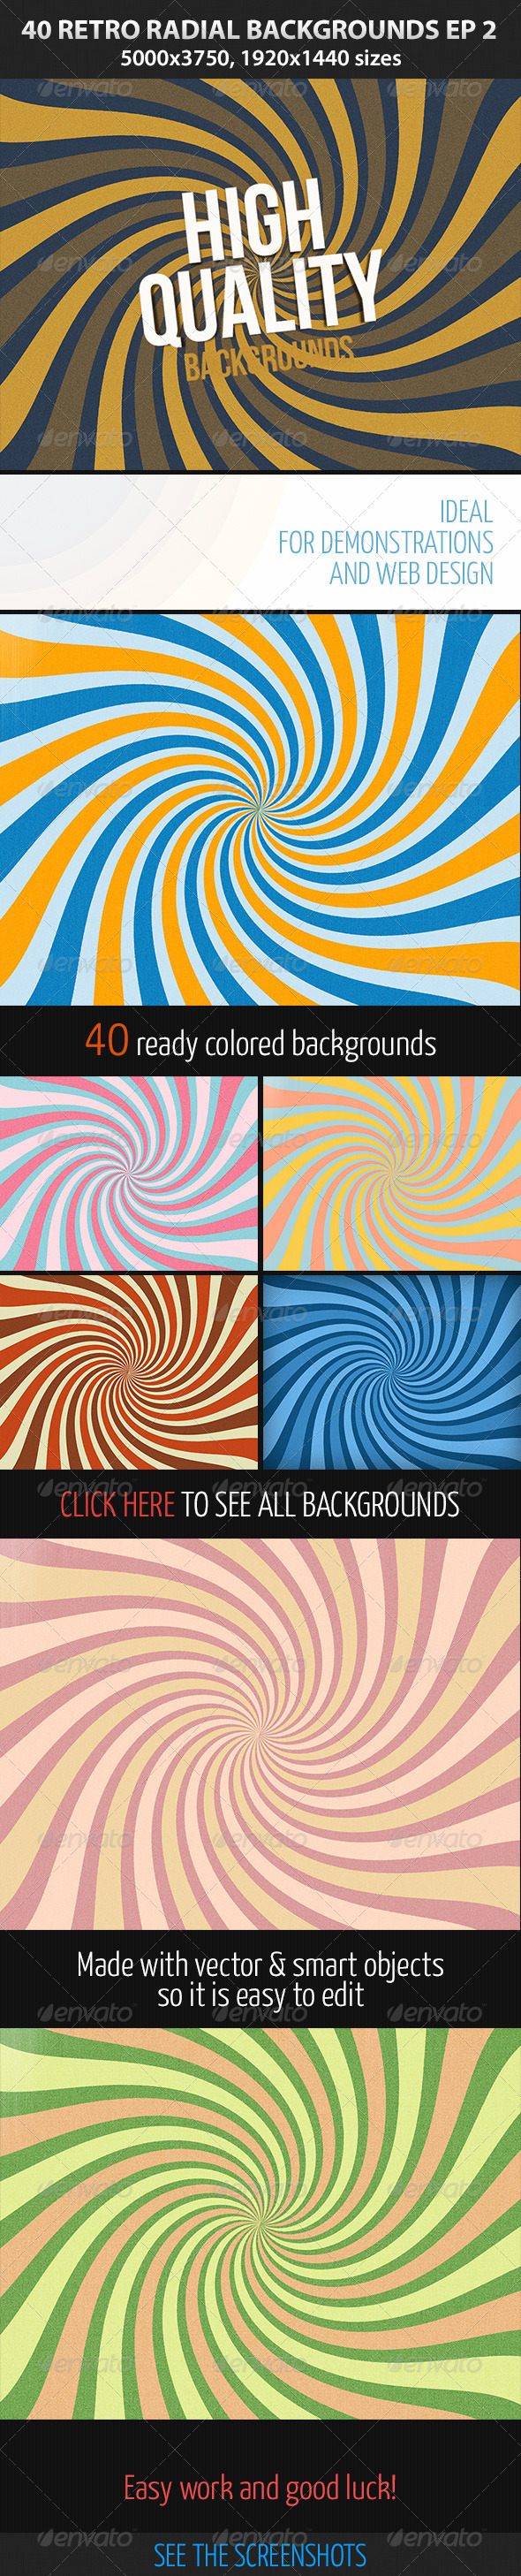 40 Retro Radial Backgrounds EP 2 Web patterns,